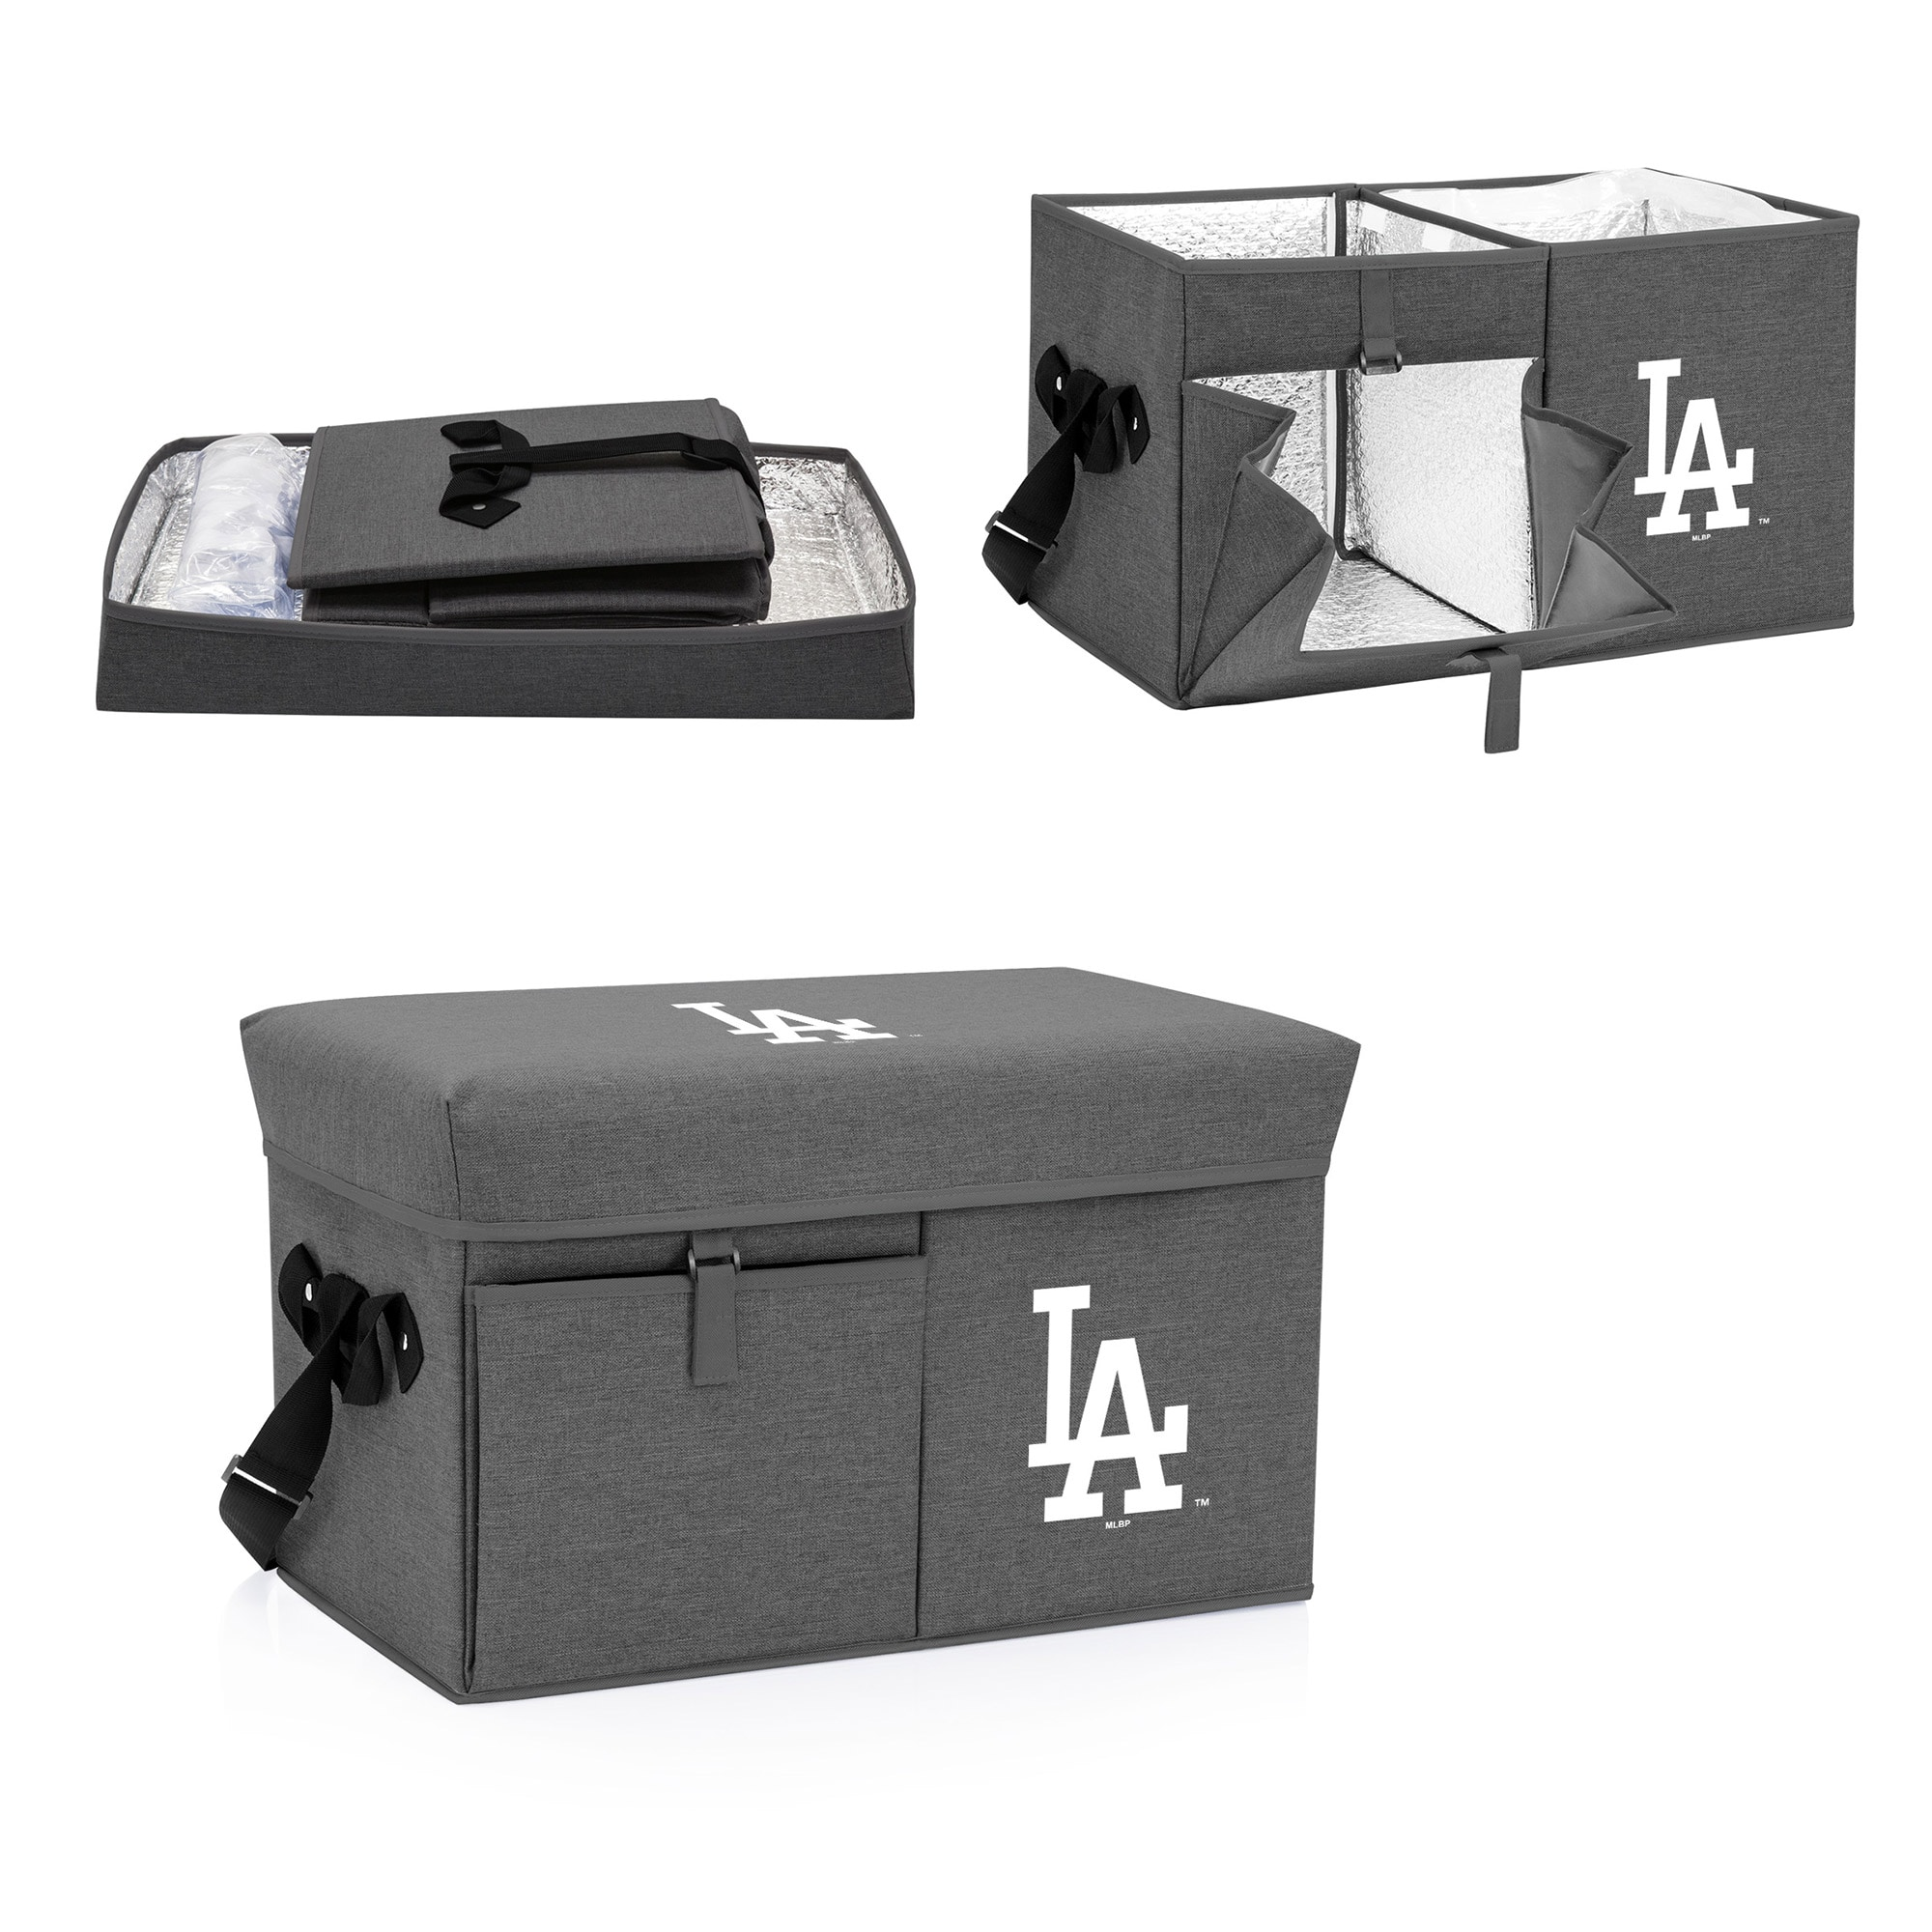 Los Angeles Dodgers Ottoman Cooler & Seat - Gray